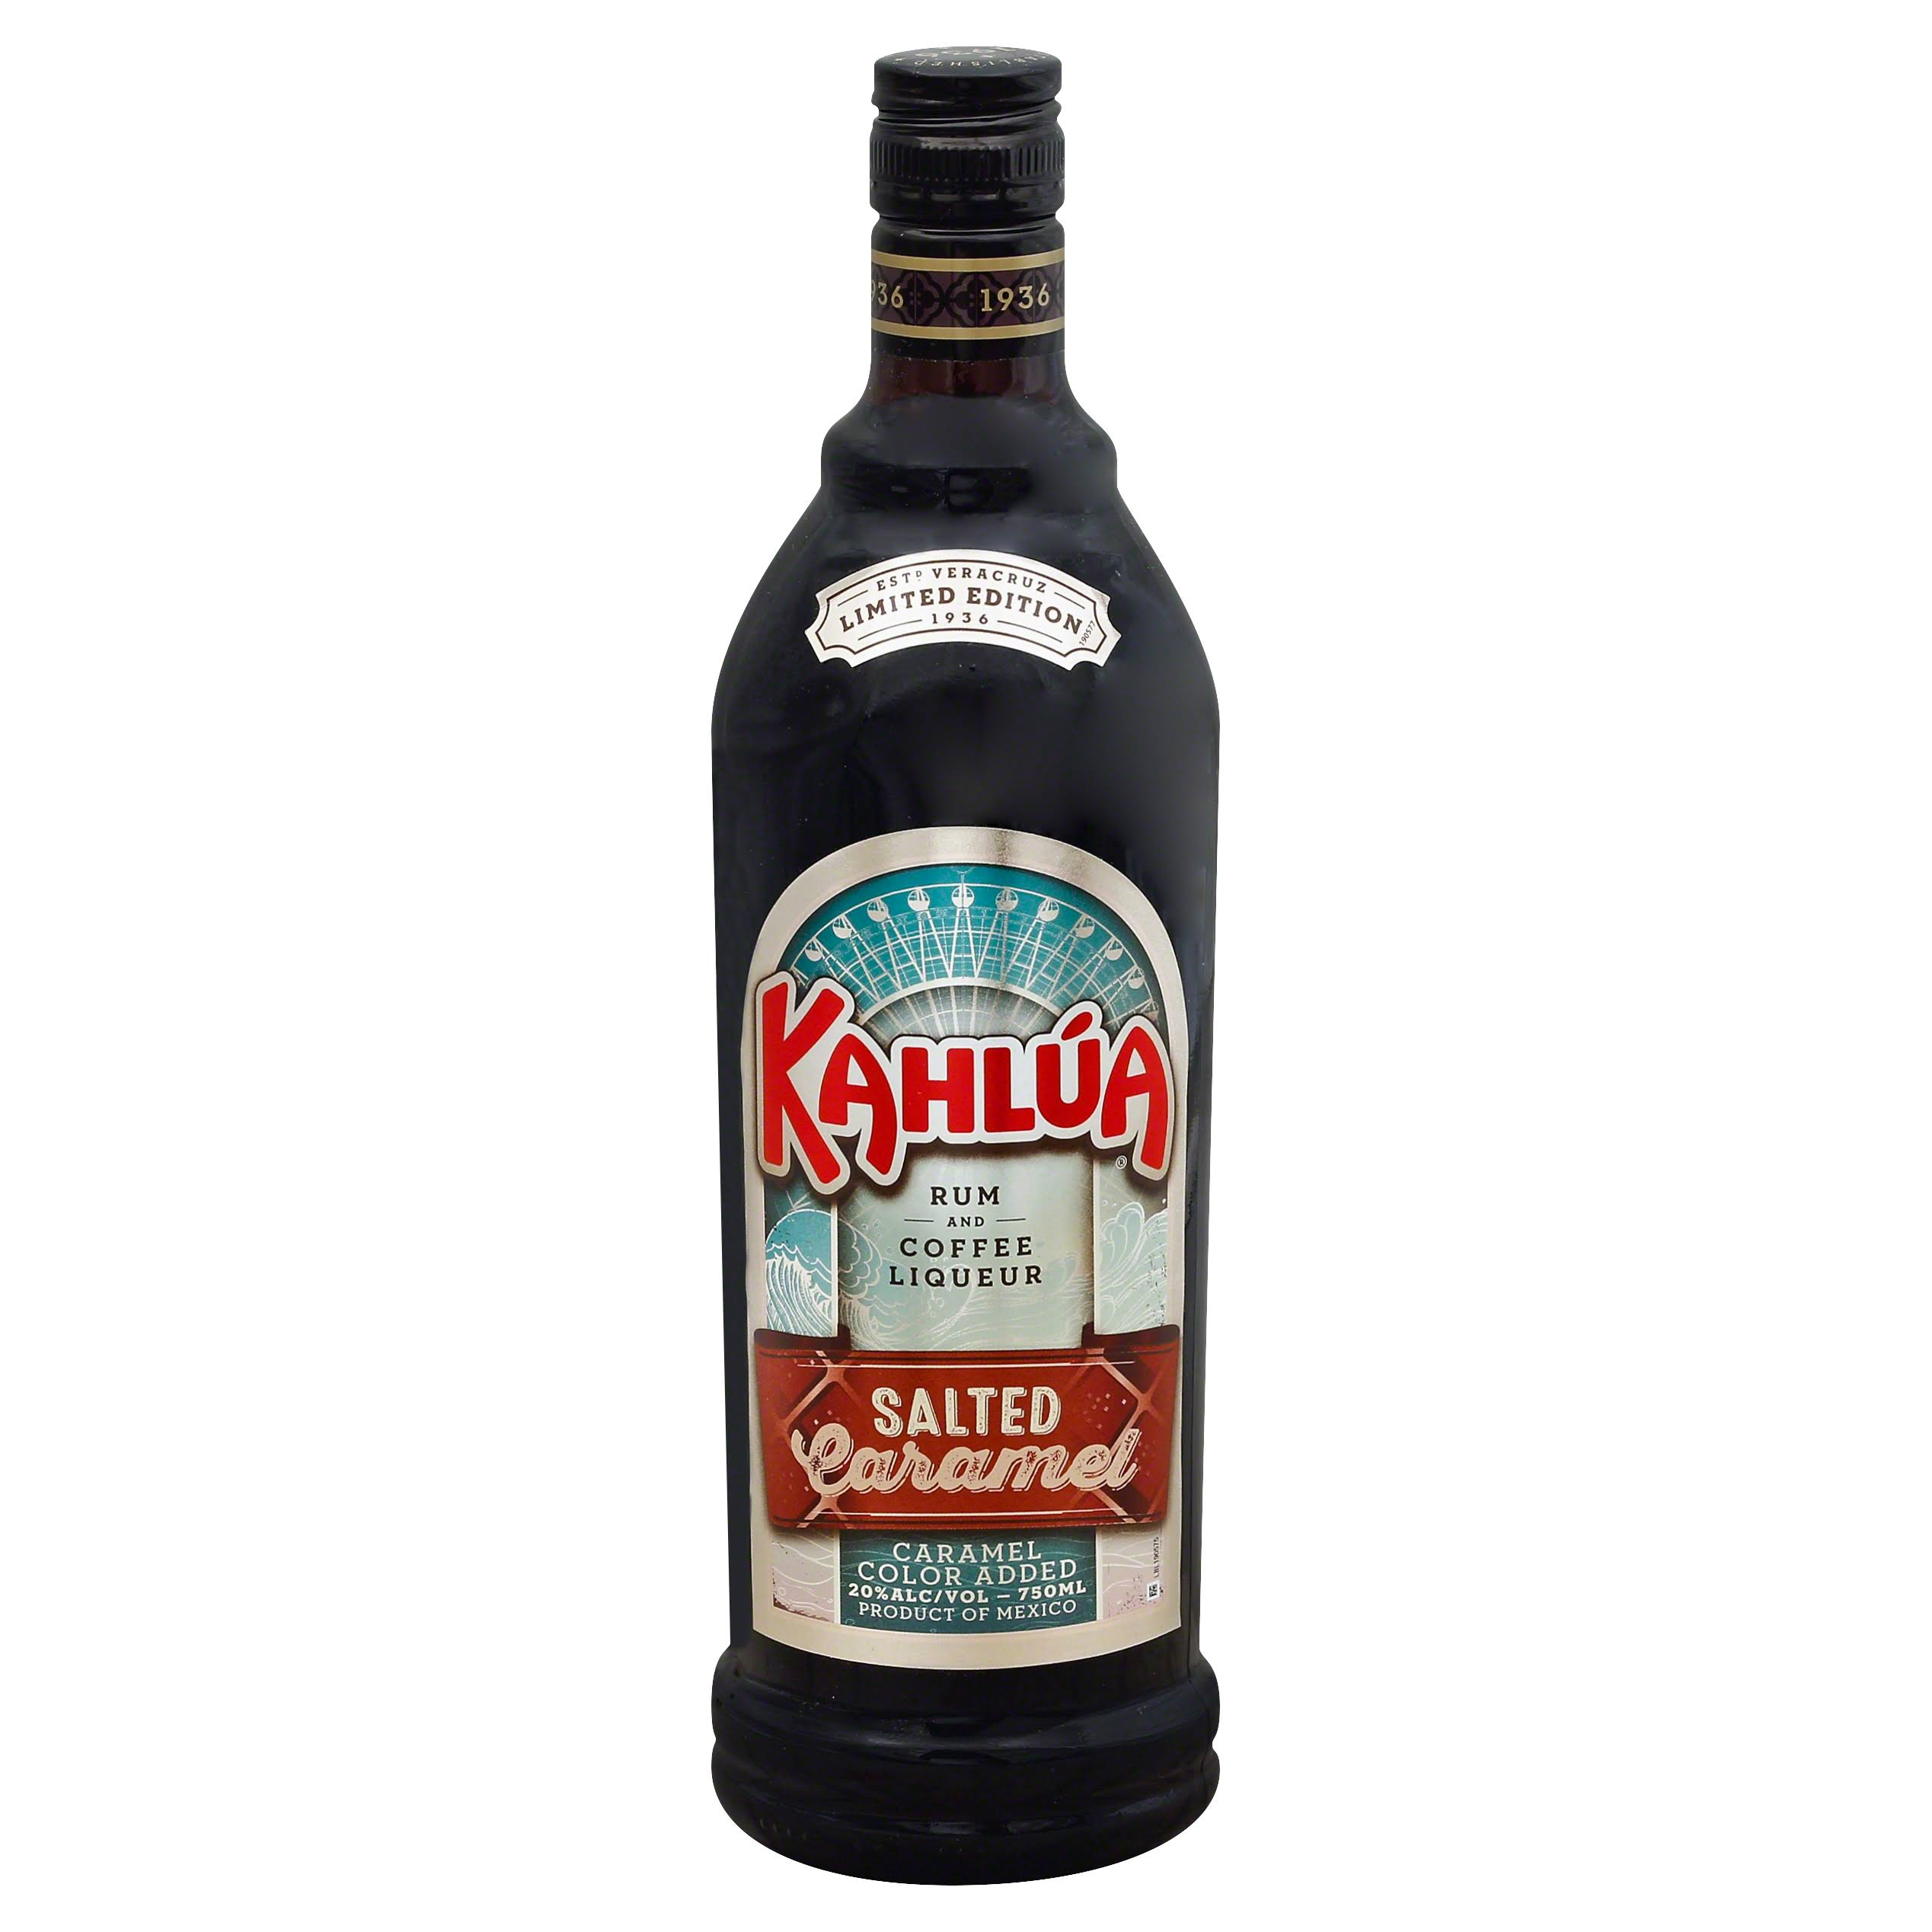 Kahlua Rum & Coffee Liqueur Salted Caramel - 750ml